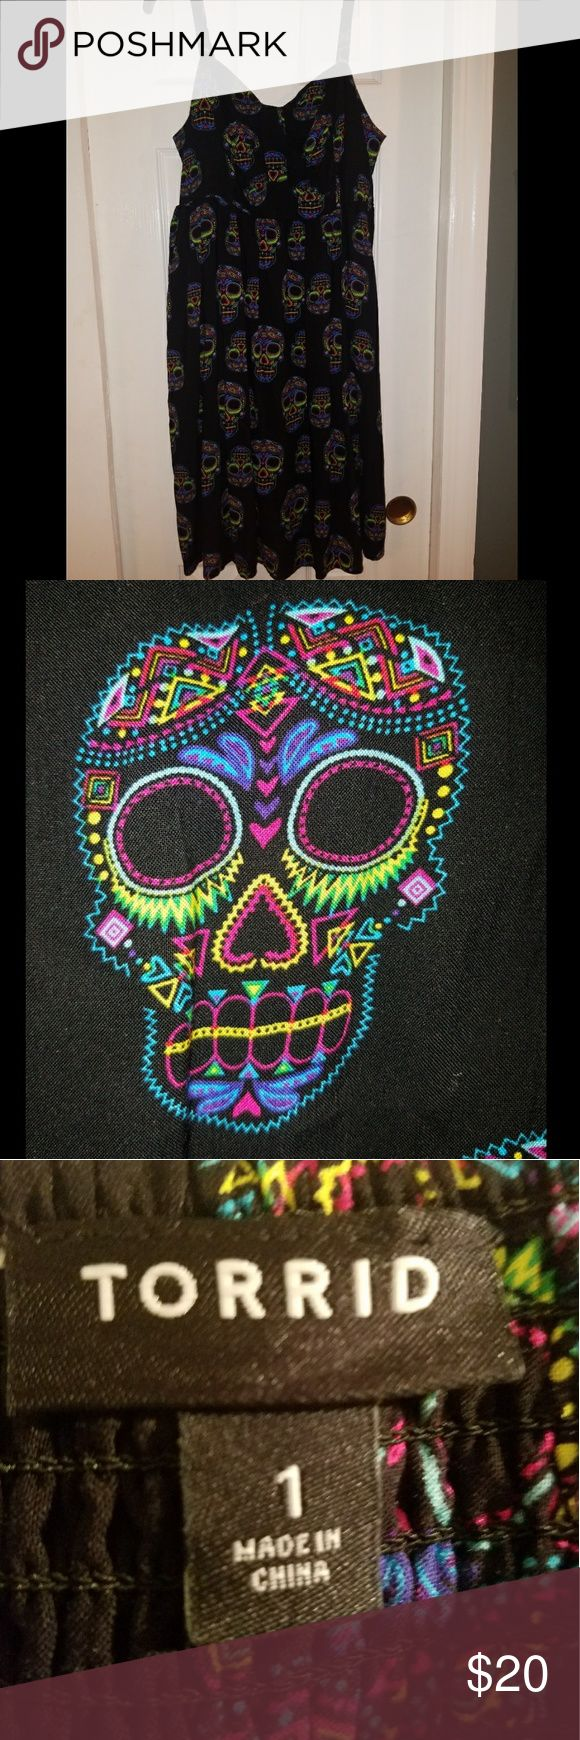 Sugar skull dress! IT HAS POCKETS!!! This dress is so much fun to wear and is very comfortable! torrid Dresses